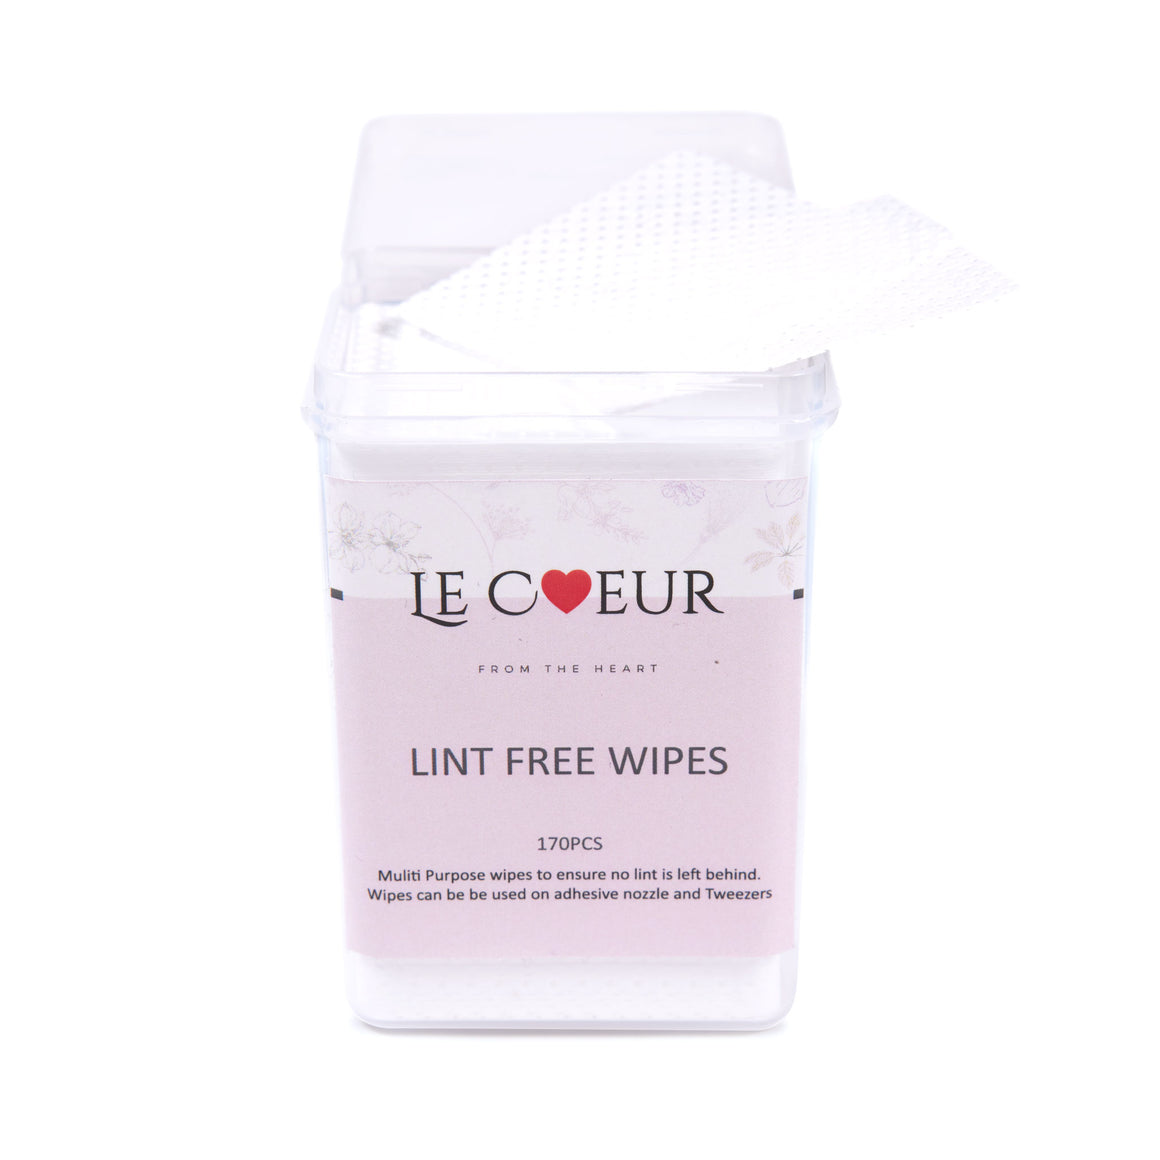 Le Coeur Lint Free Wipes (170 sheets)